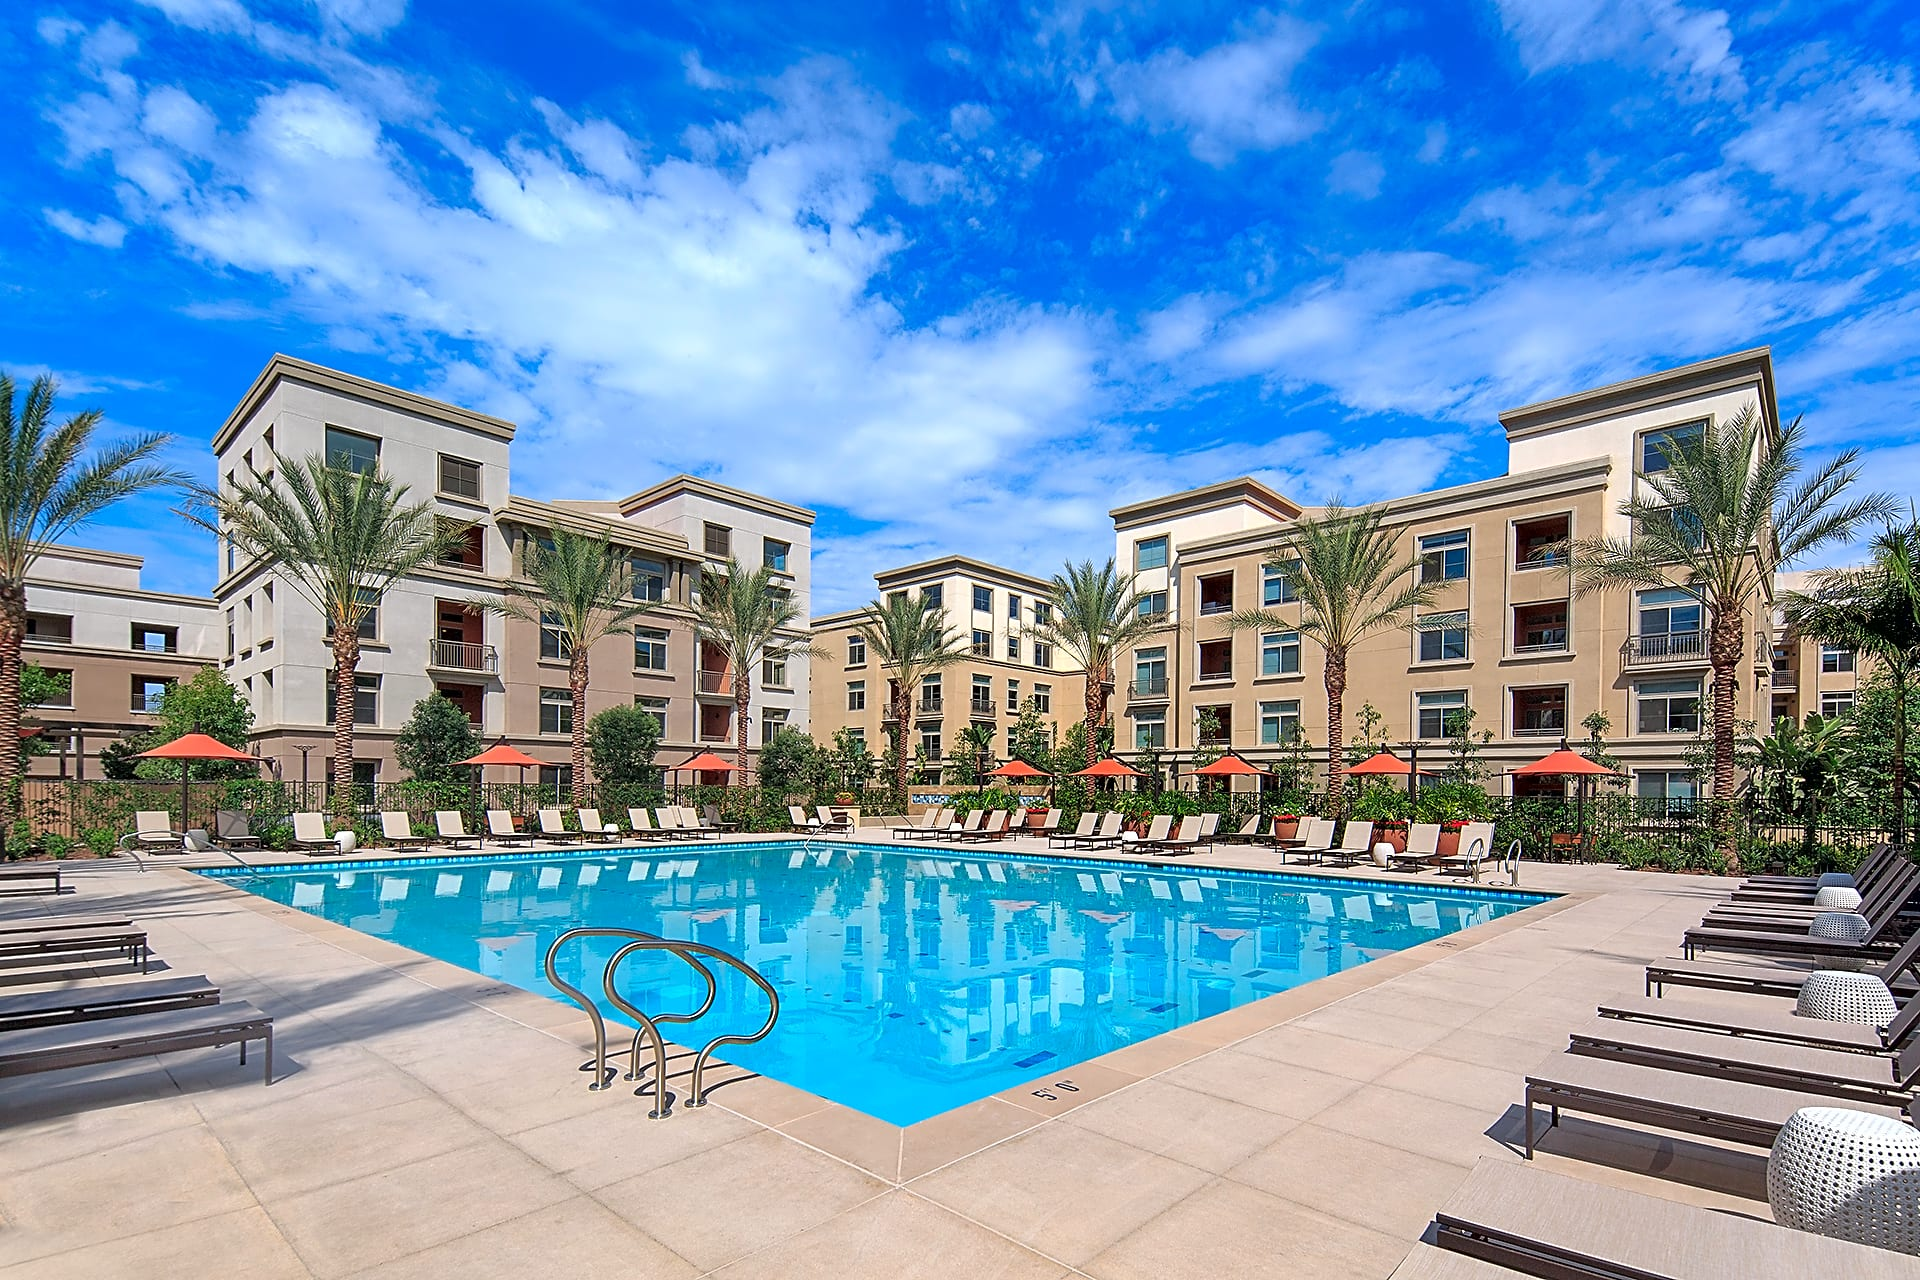 Help create the energy and excitement around apartment homes. It starts with discovering prospects' needs and matching those needs with the perfect apartment home. Connect with UDR Careers: Orange County. Salinas. San Diego. San Francisco Bay Area. San Francisco. Silicon Valley. Colorado. Denver. District of Columbia. Washington DC.